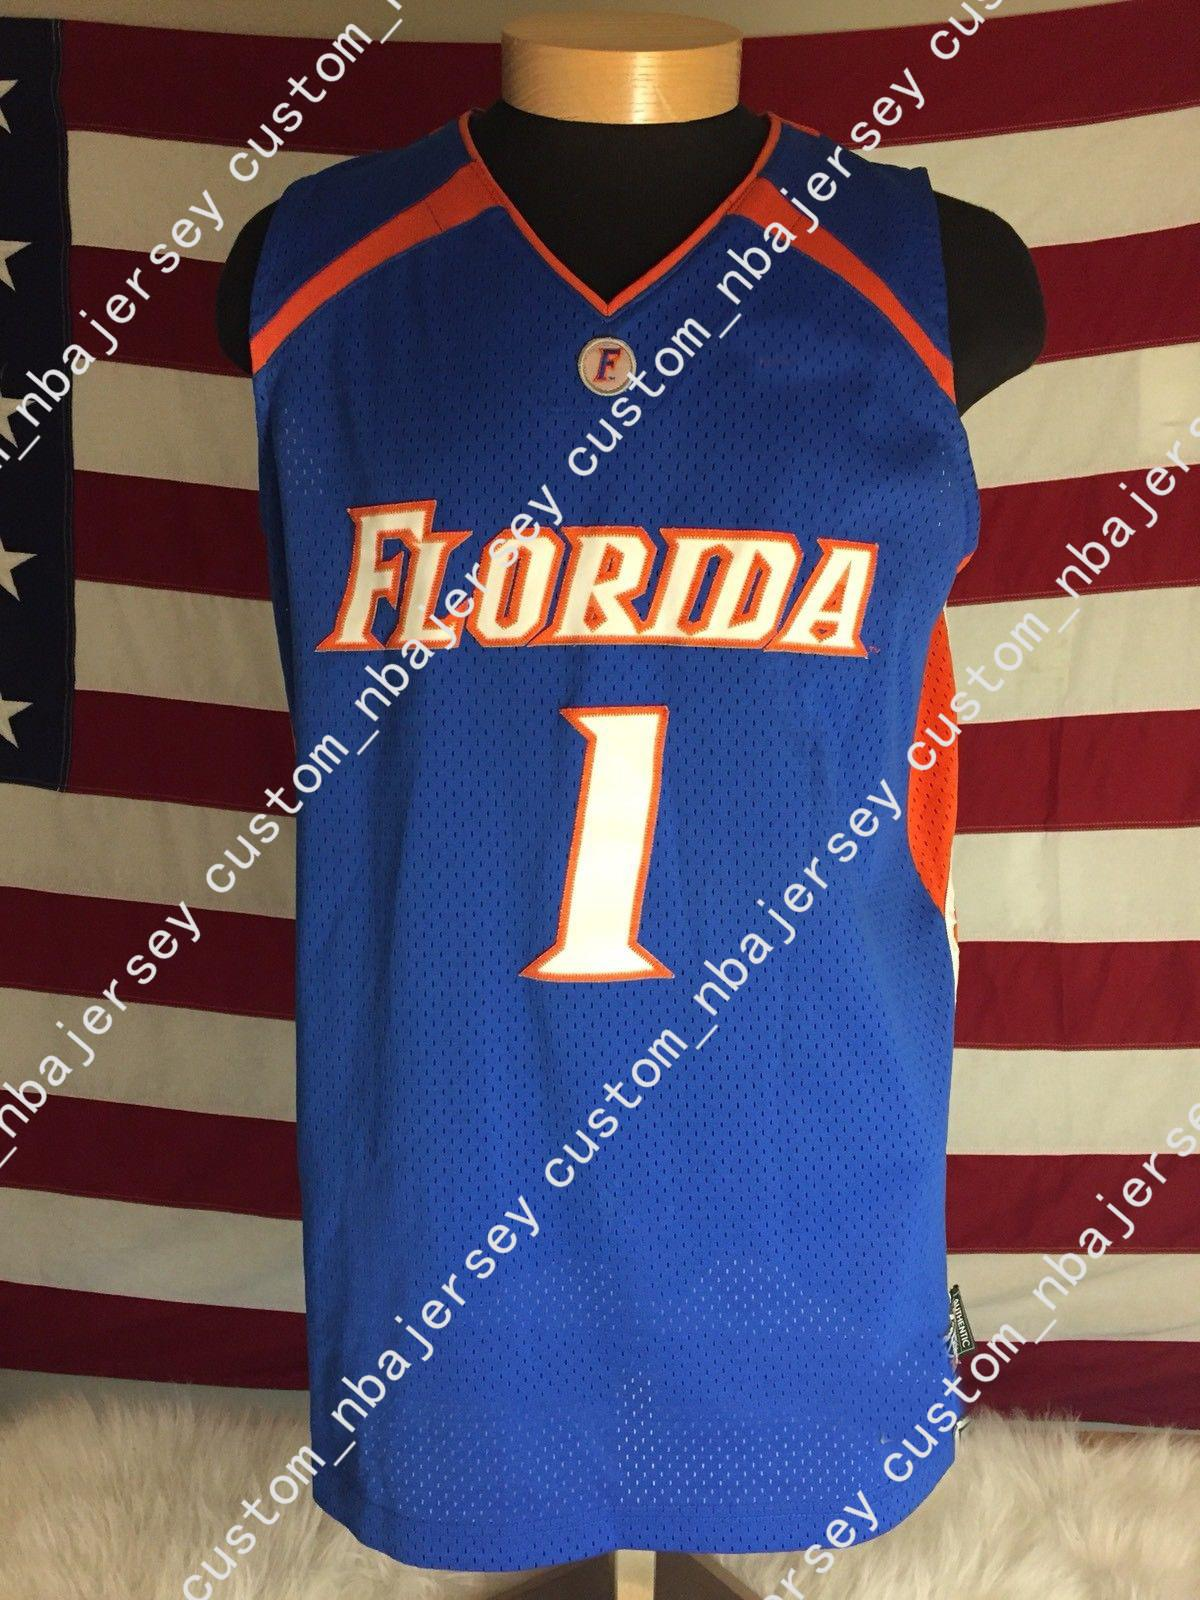 687225d92 2019 Cheap Custom Florida Gators Blue Orange Basketball Jersey #1 Stitched  Customize Any Number Name MEN WOMEN YOUTH XS 5XL From Custom_nbajersey, ...